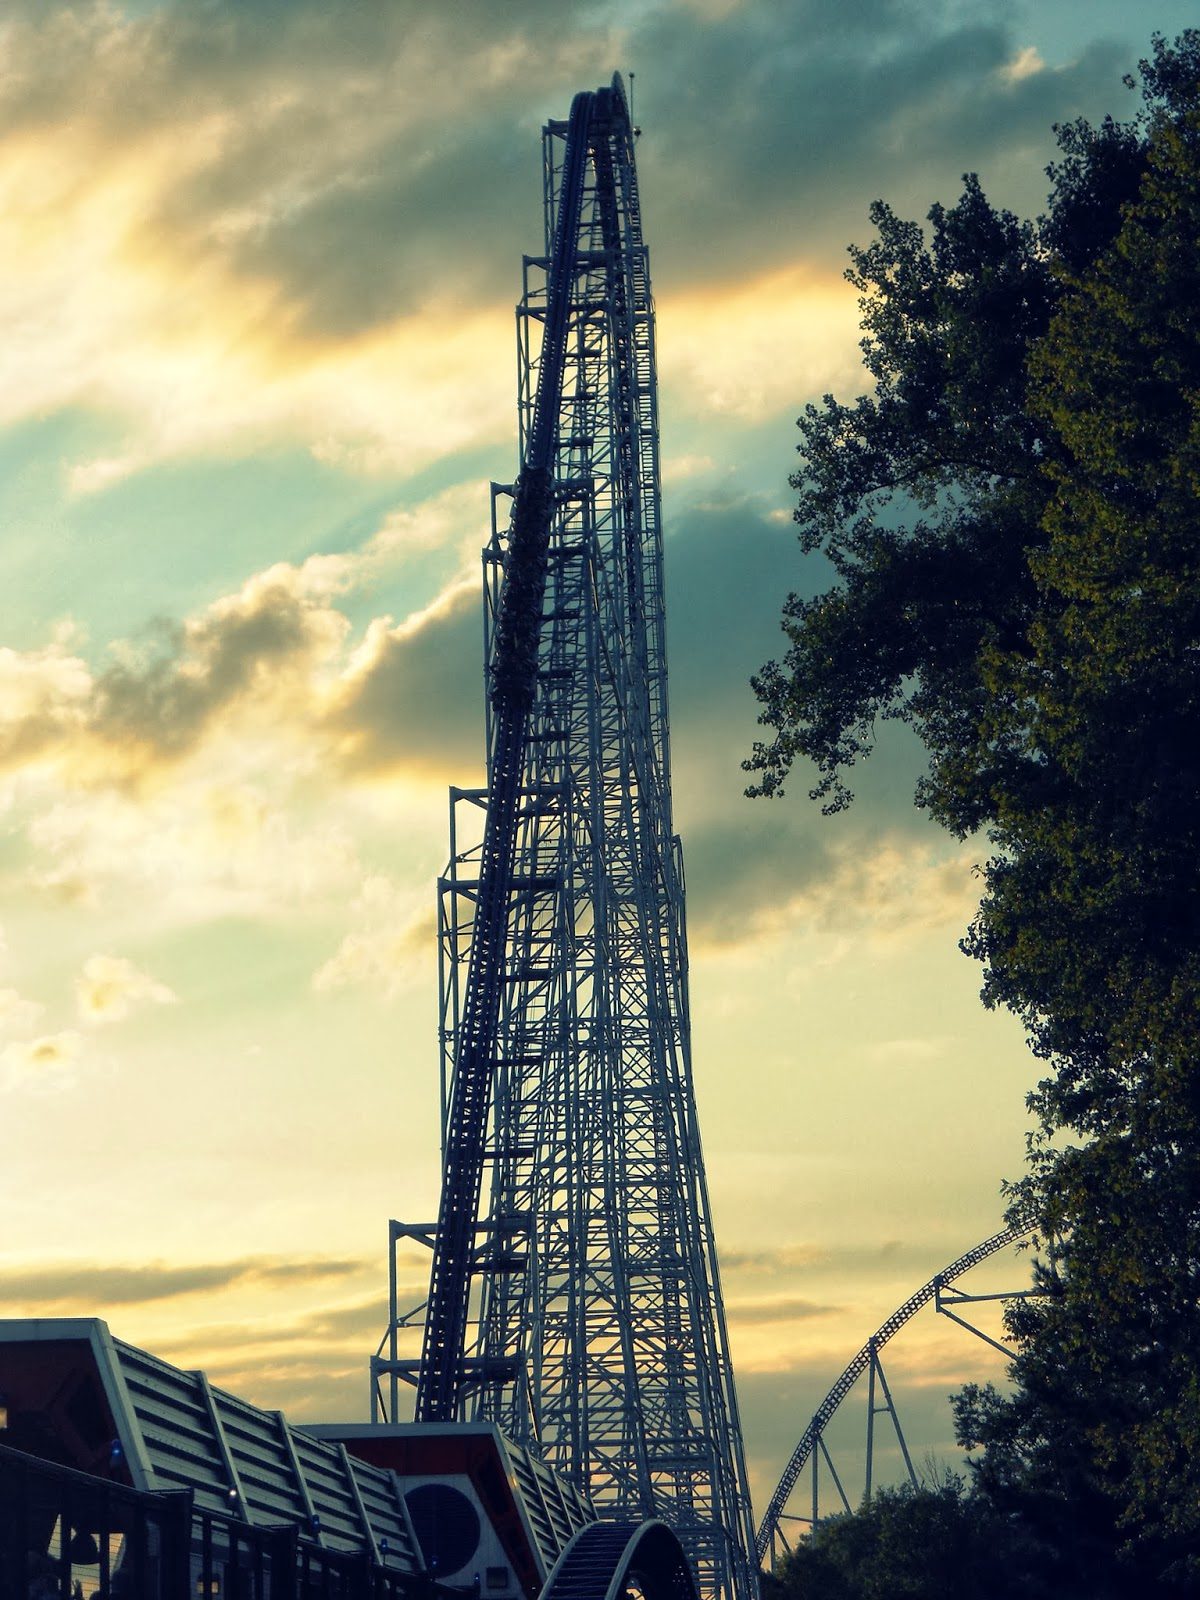 millennium force terrifying coaster